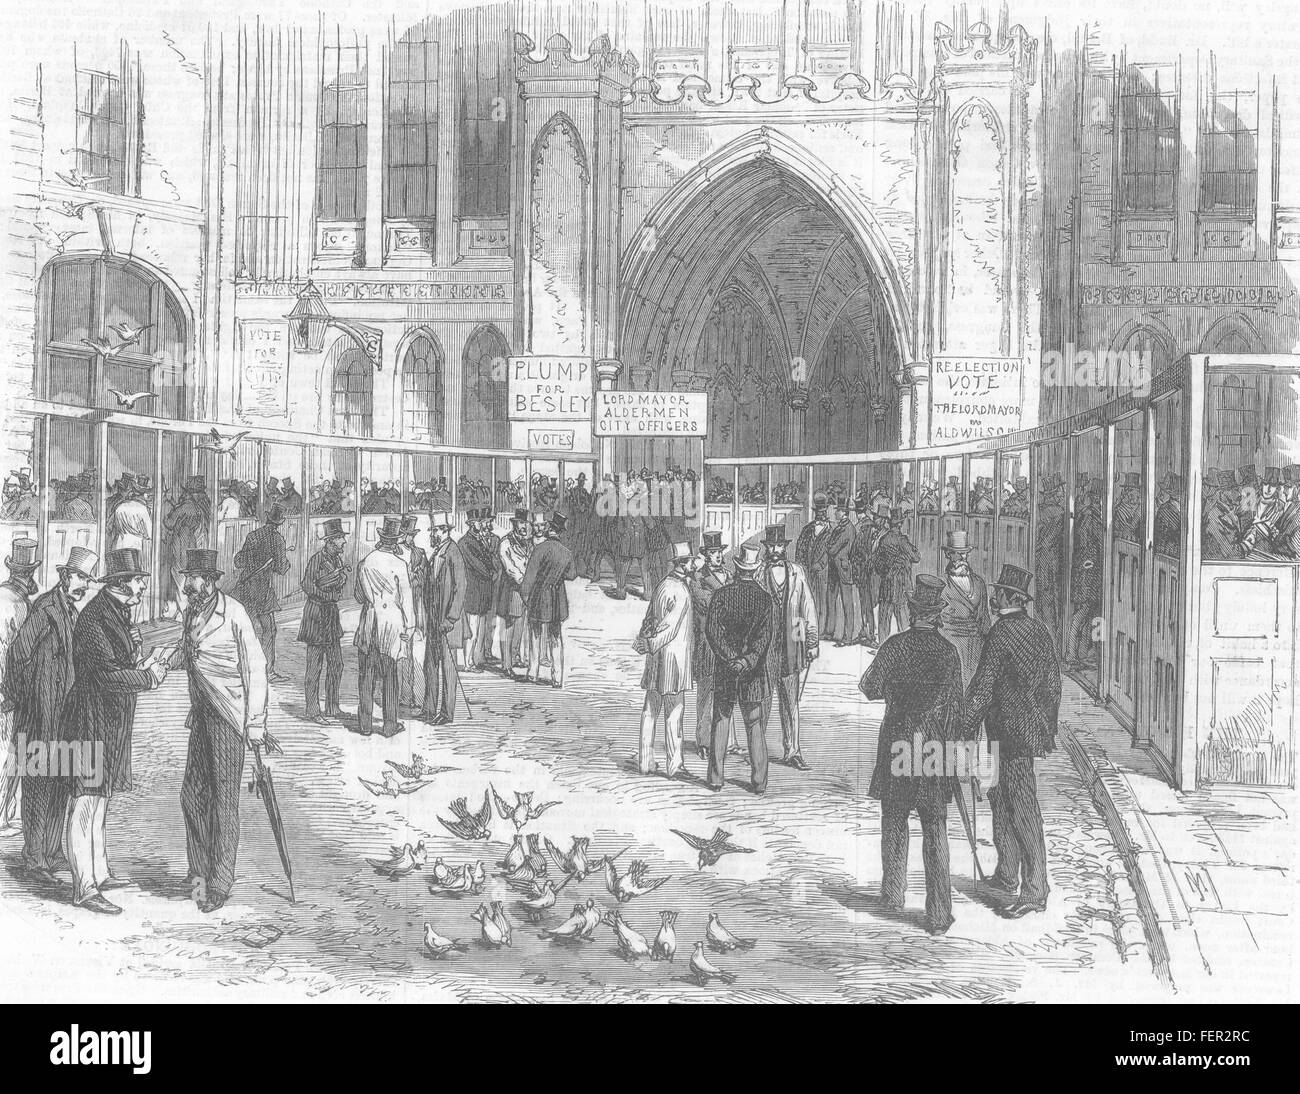 LONDON registration of the Livery in Guildhall Yard 1869. Illustrated London News - Stock Image